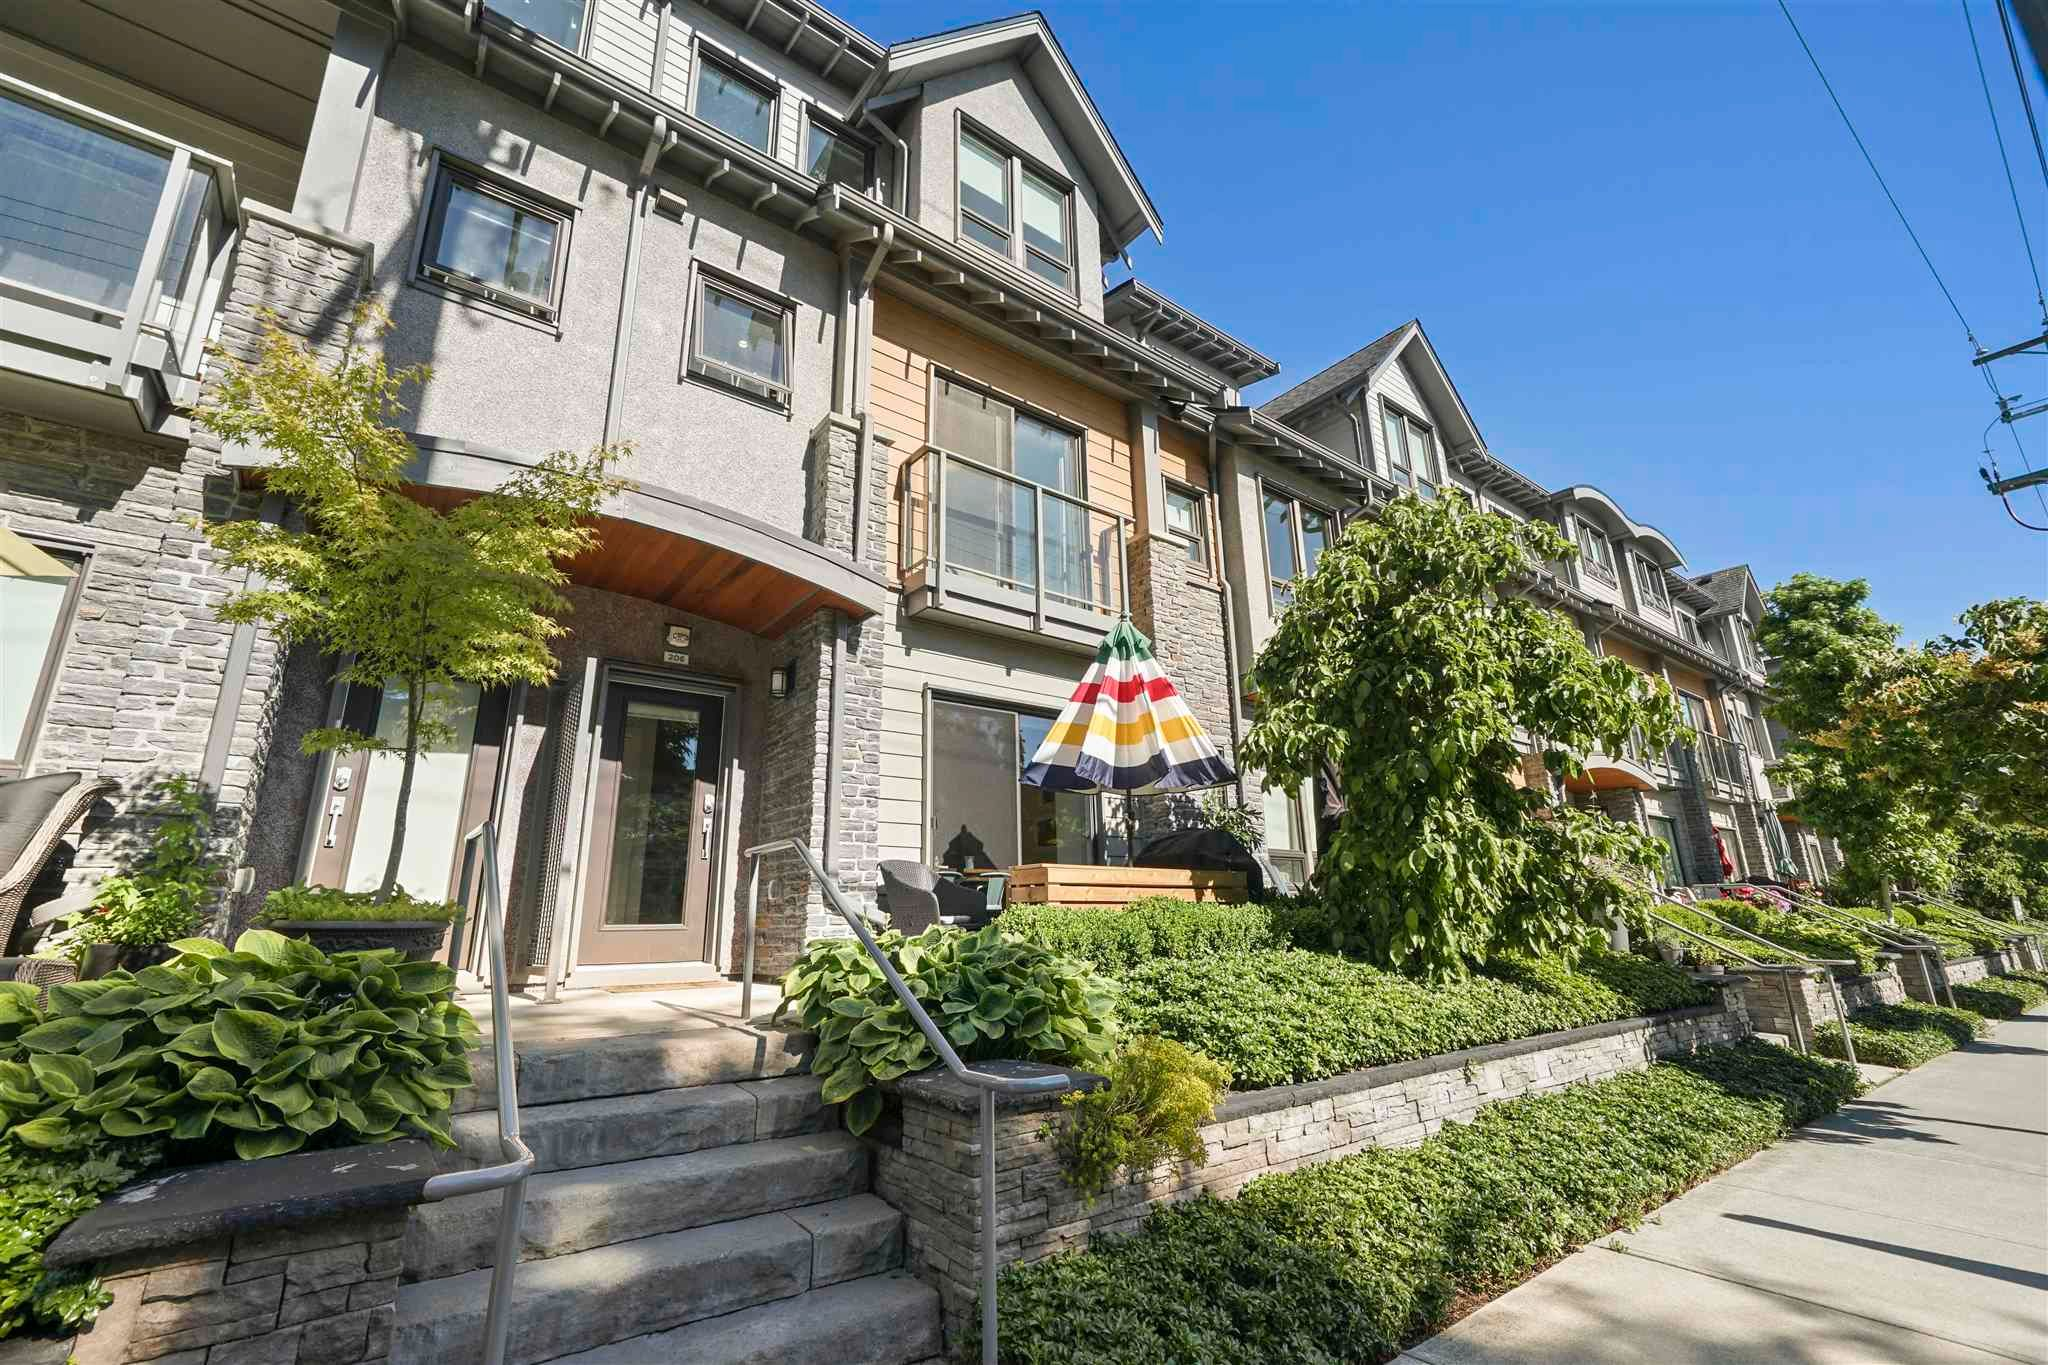 """Main Photo: 206 1738 55A Street in Delta: Cliff Drive Townhouse for sale in """"CITY HOMES @ NORTH GATE"""" (Tsawwassen)  : MLS®# R2595789"""